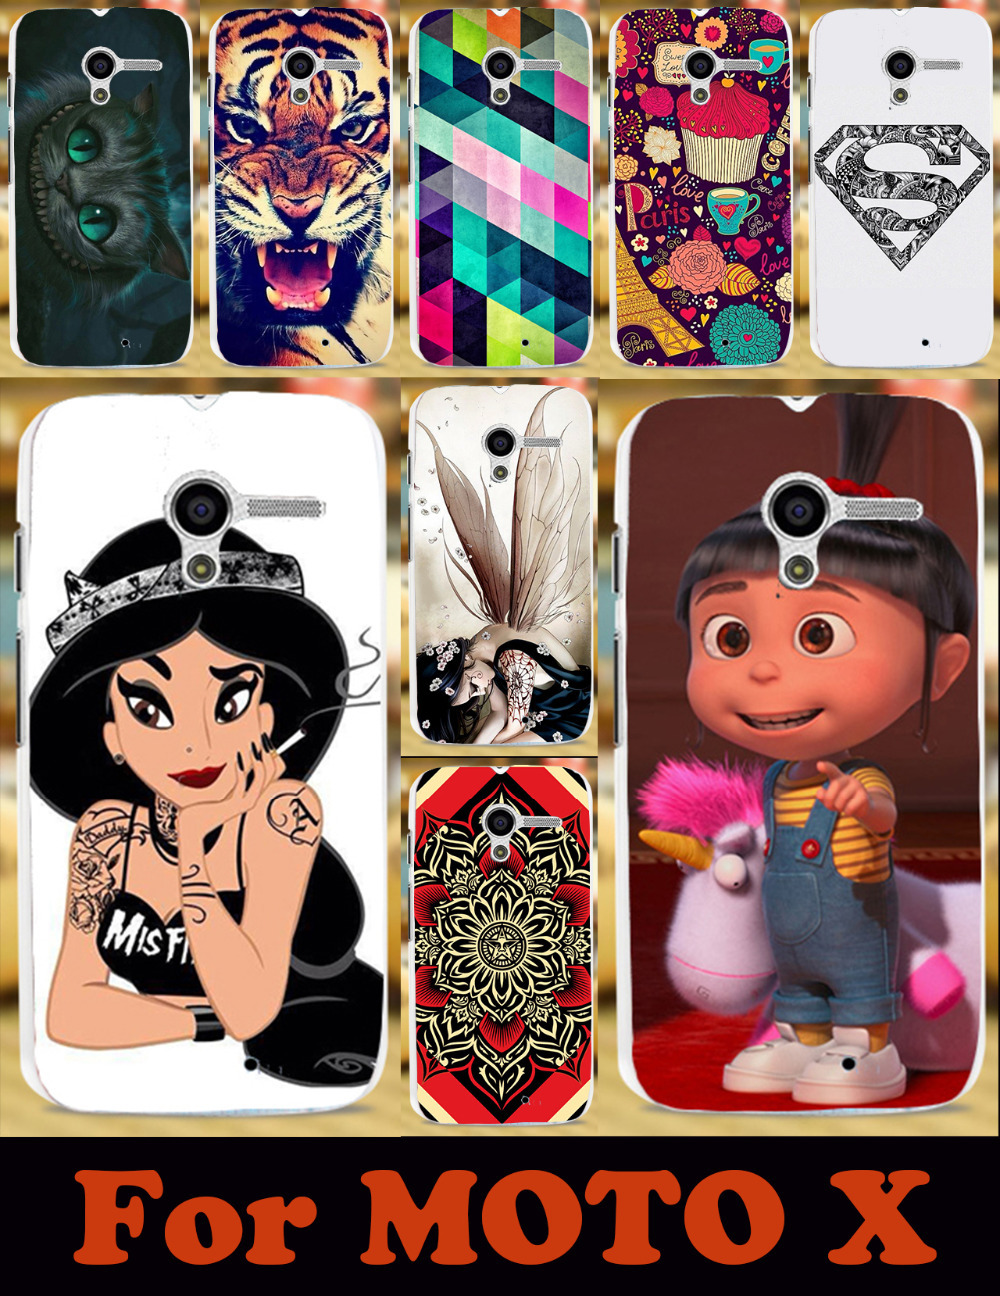 22 photos painted mobile phone case protective case for Motorola X MOTO X XT1055 XT1053 XT1056 XT1058 hard Back cover Skin Shell(China (Mainland))